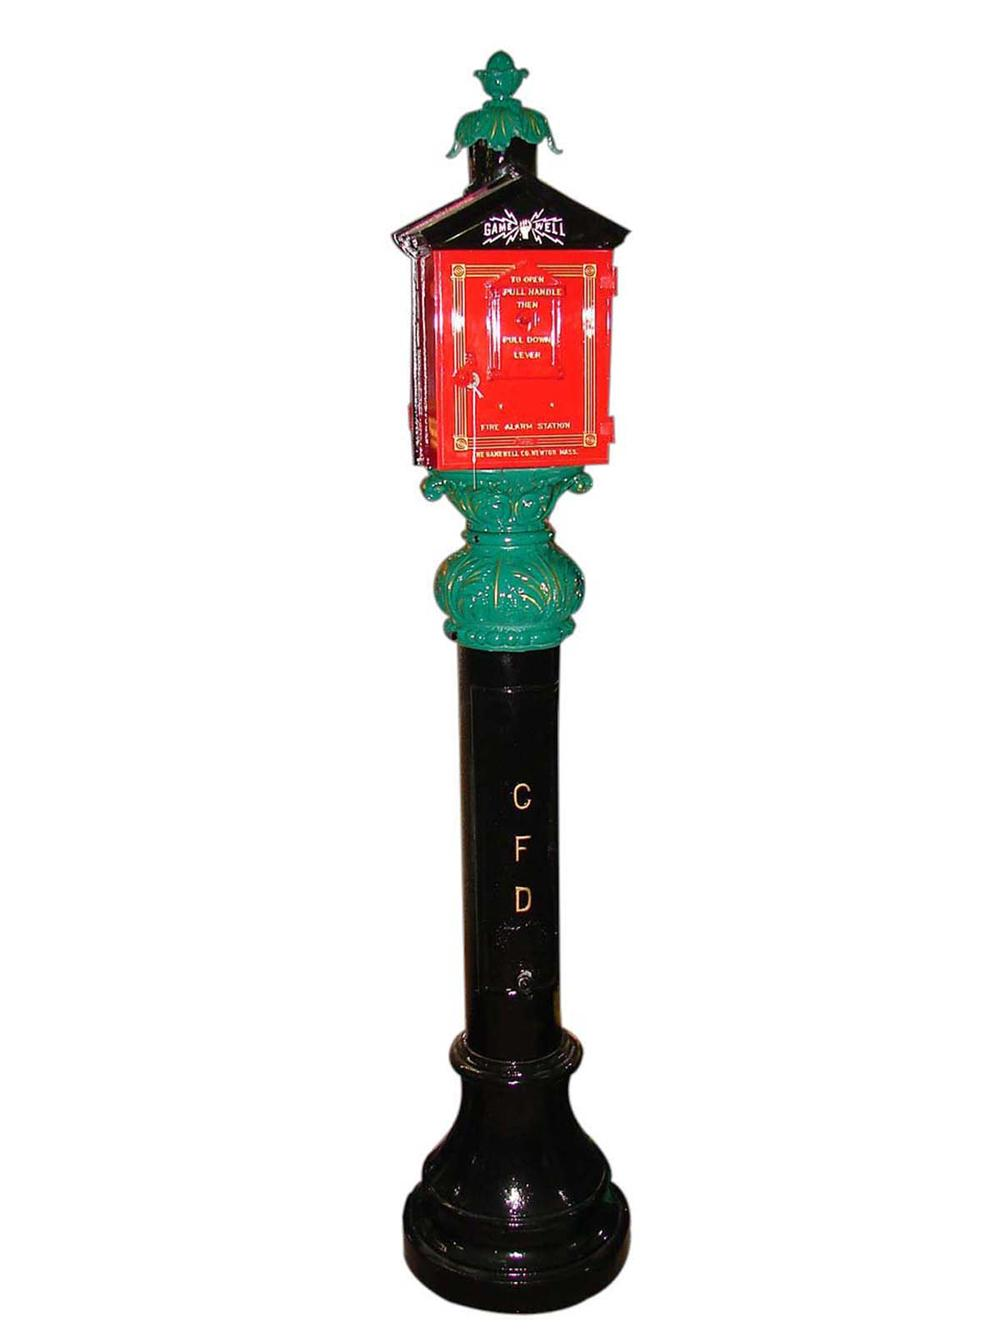 Stunning restored 1920s Chicago Fire Department cast iron sidewalk Fire Alarm Call Box with decorative filigree. - Front 3/4 - 112925